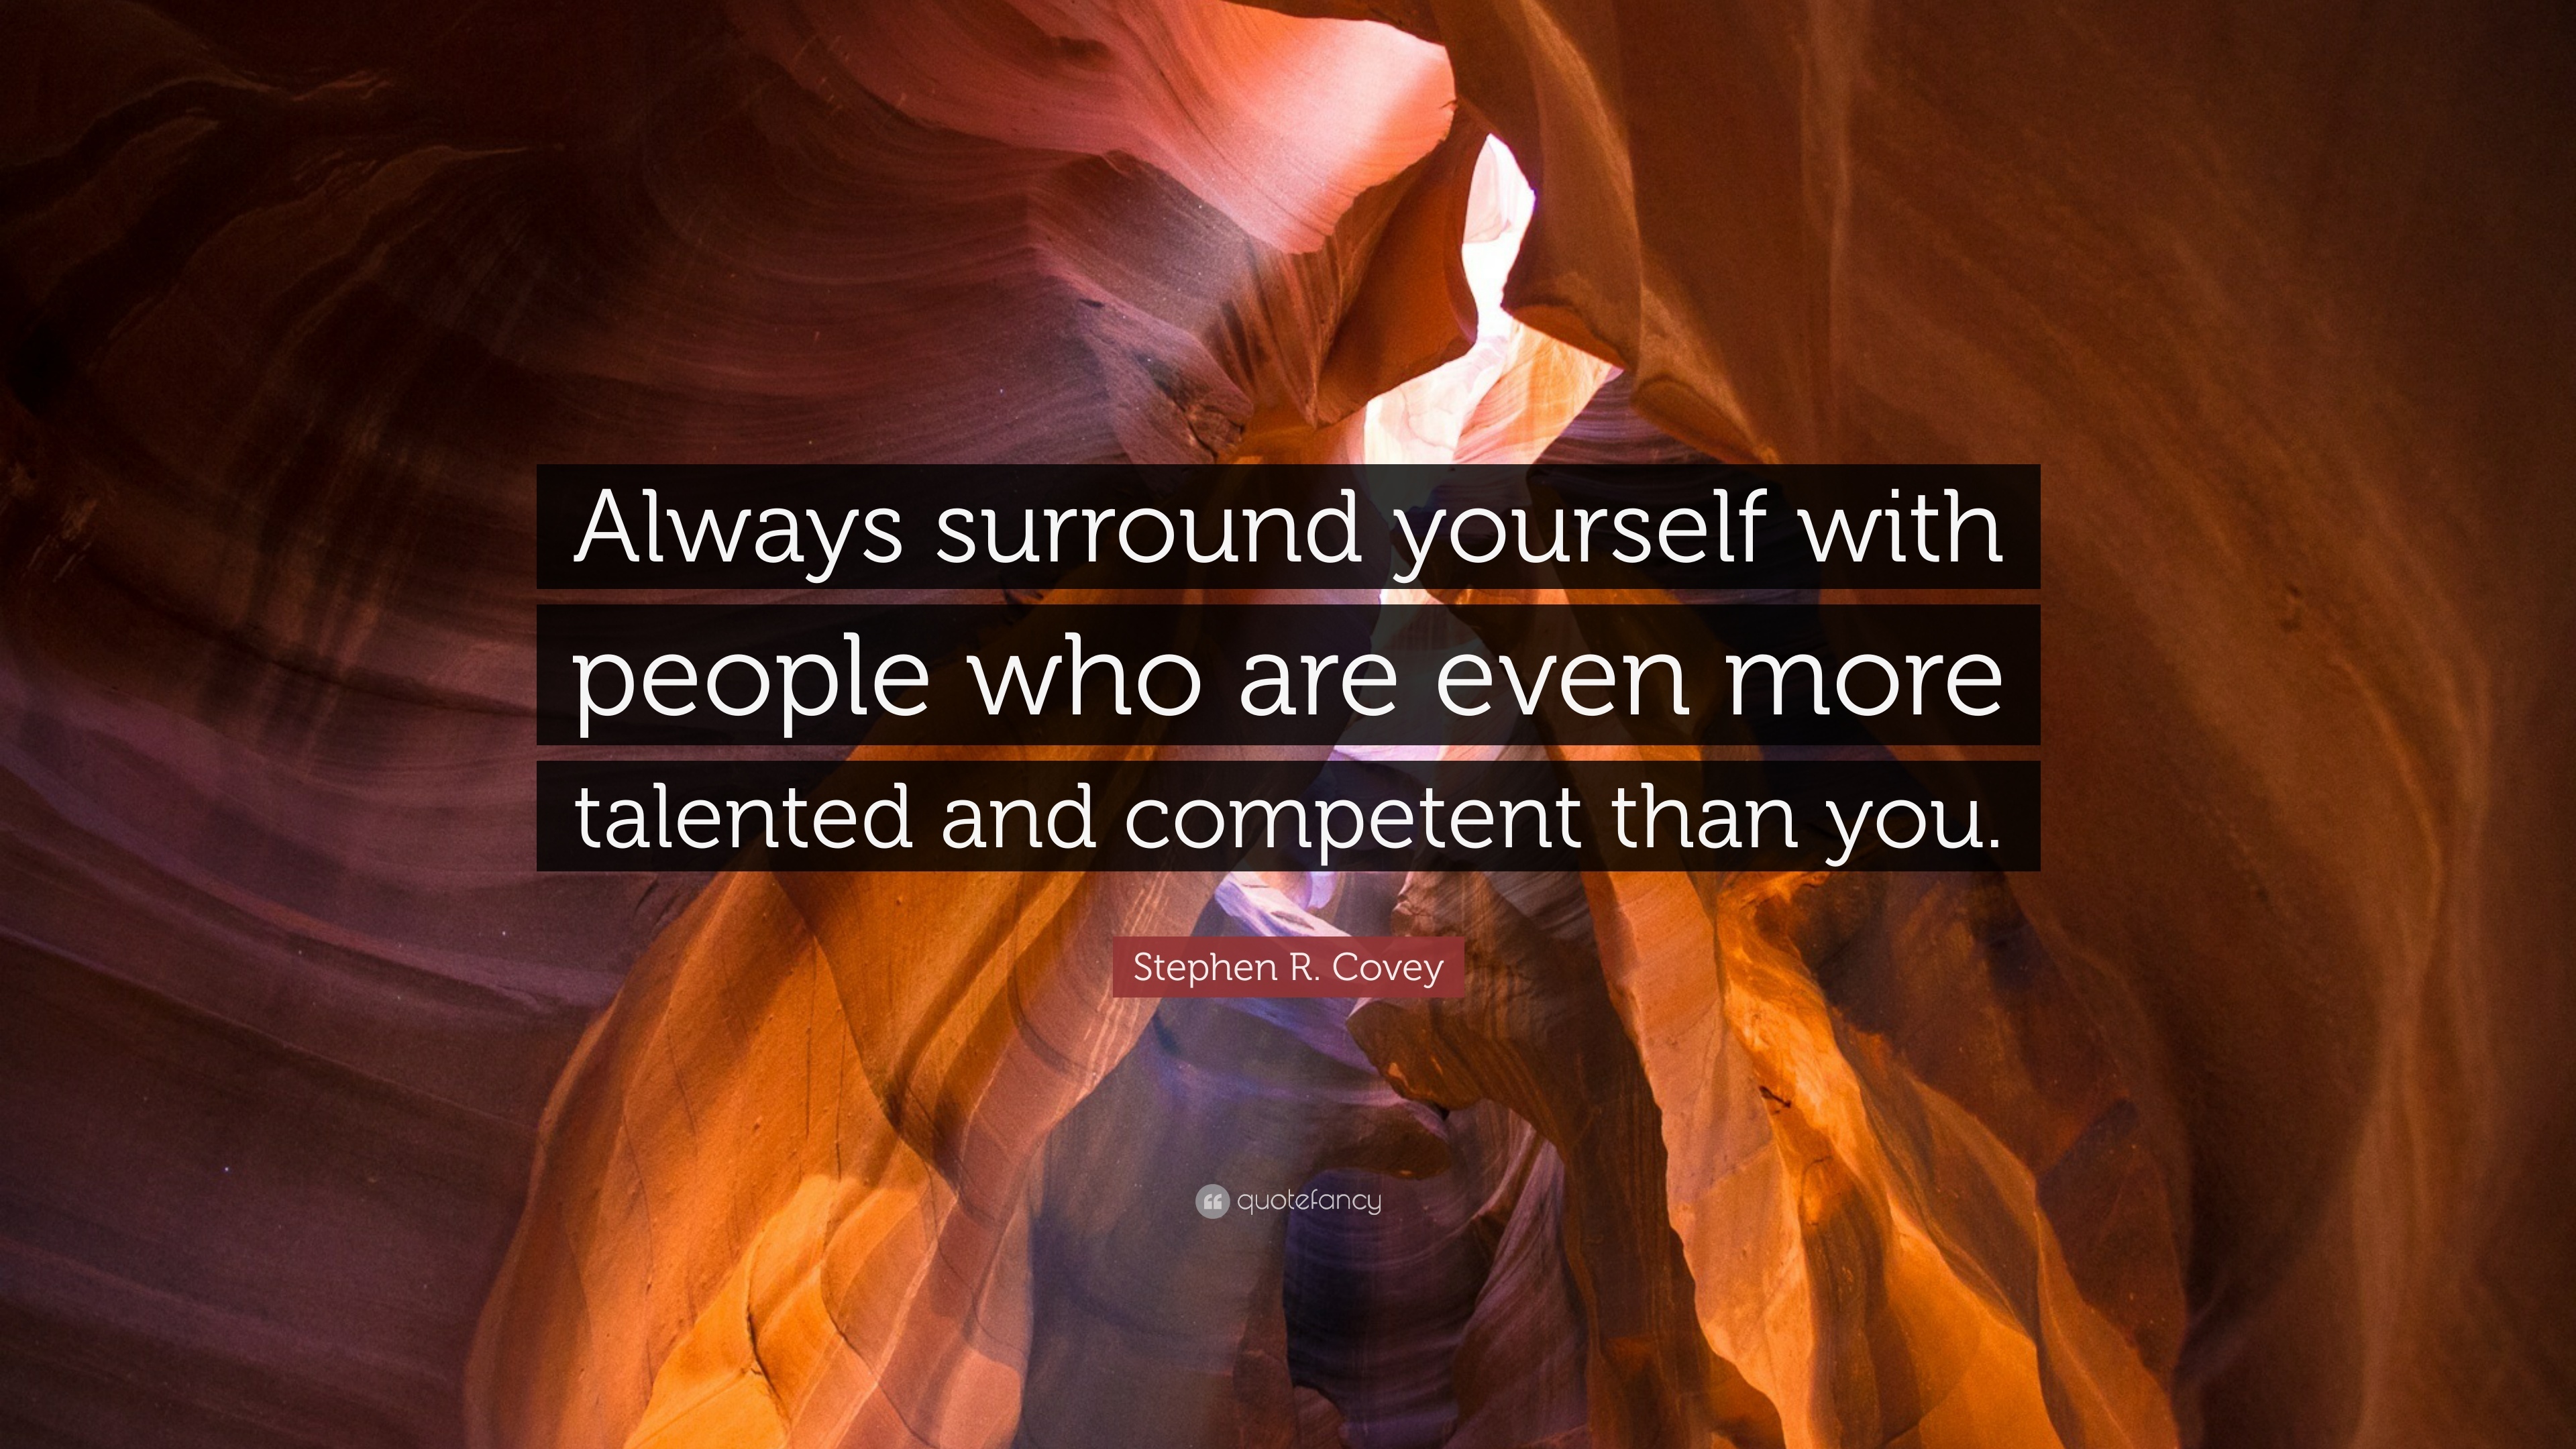 Stephen R Covey Quote Always Surround Yourself With People Who